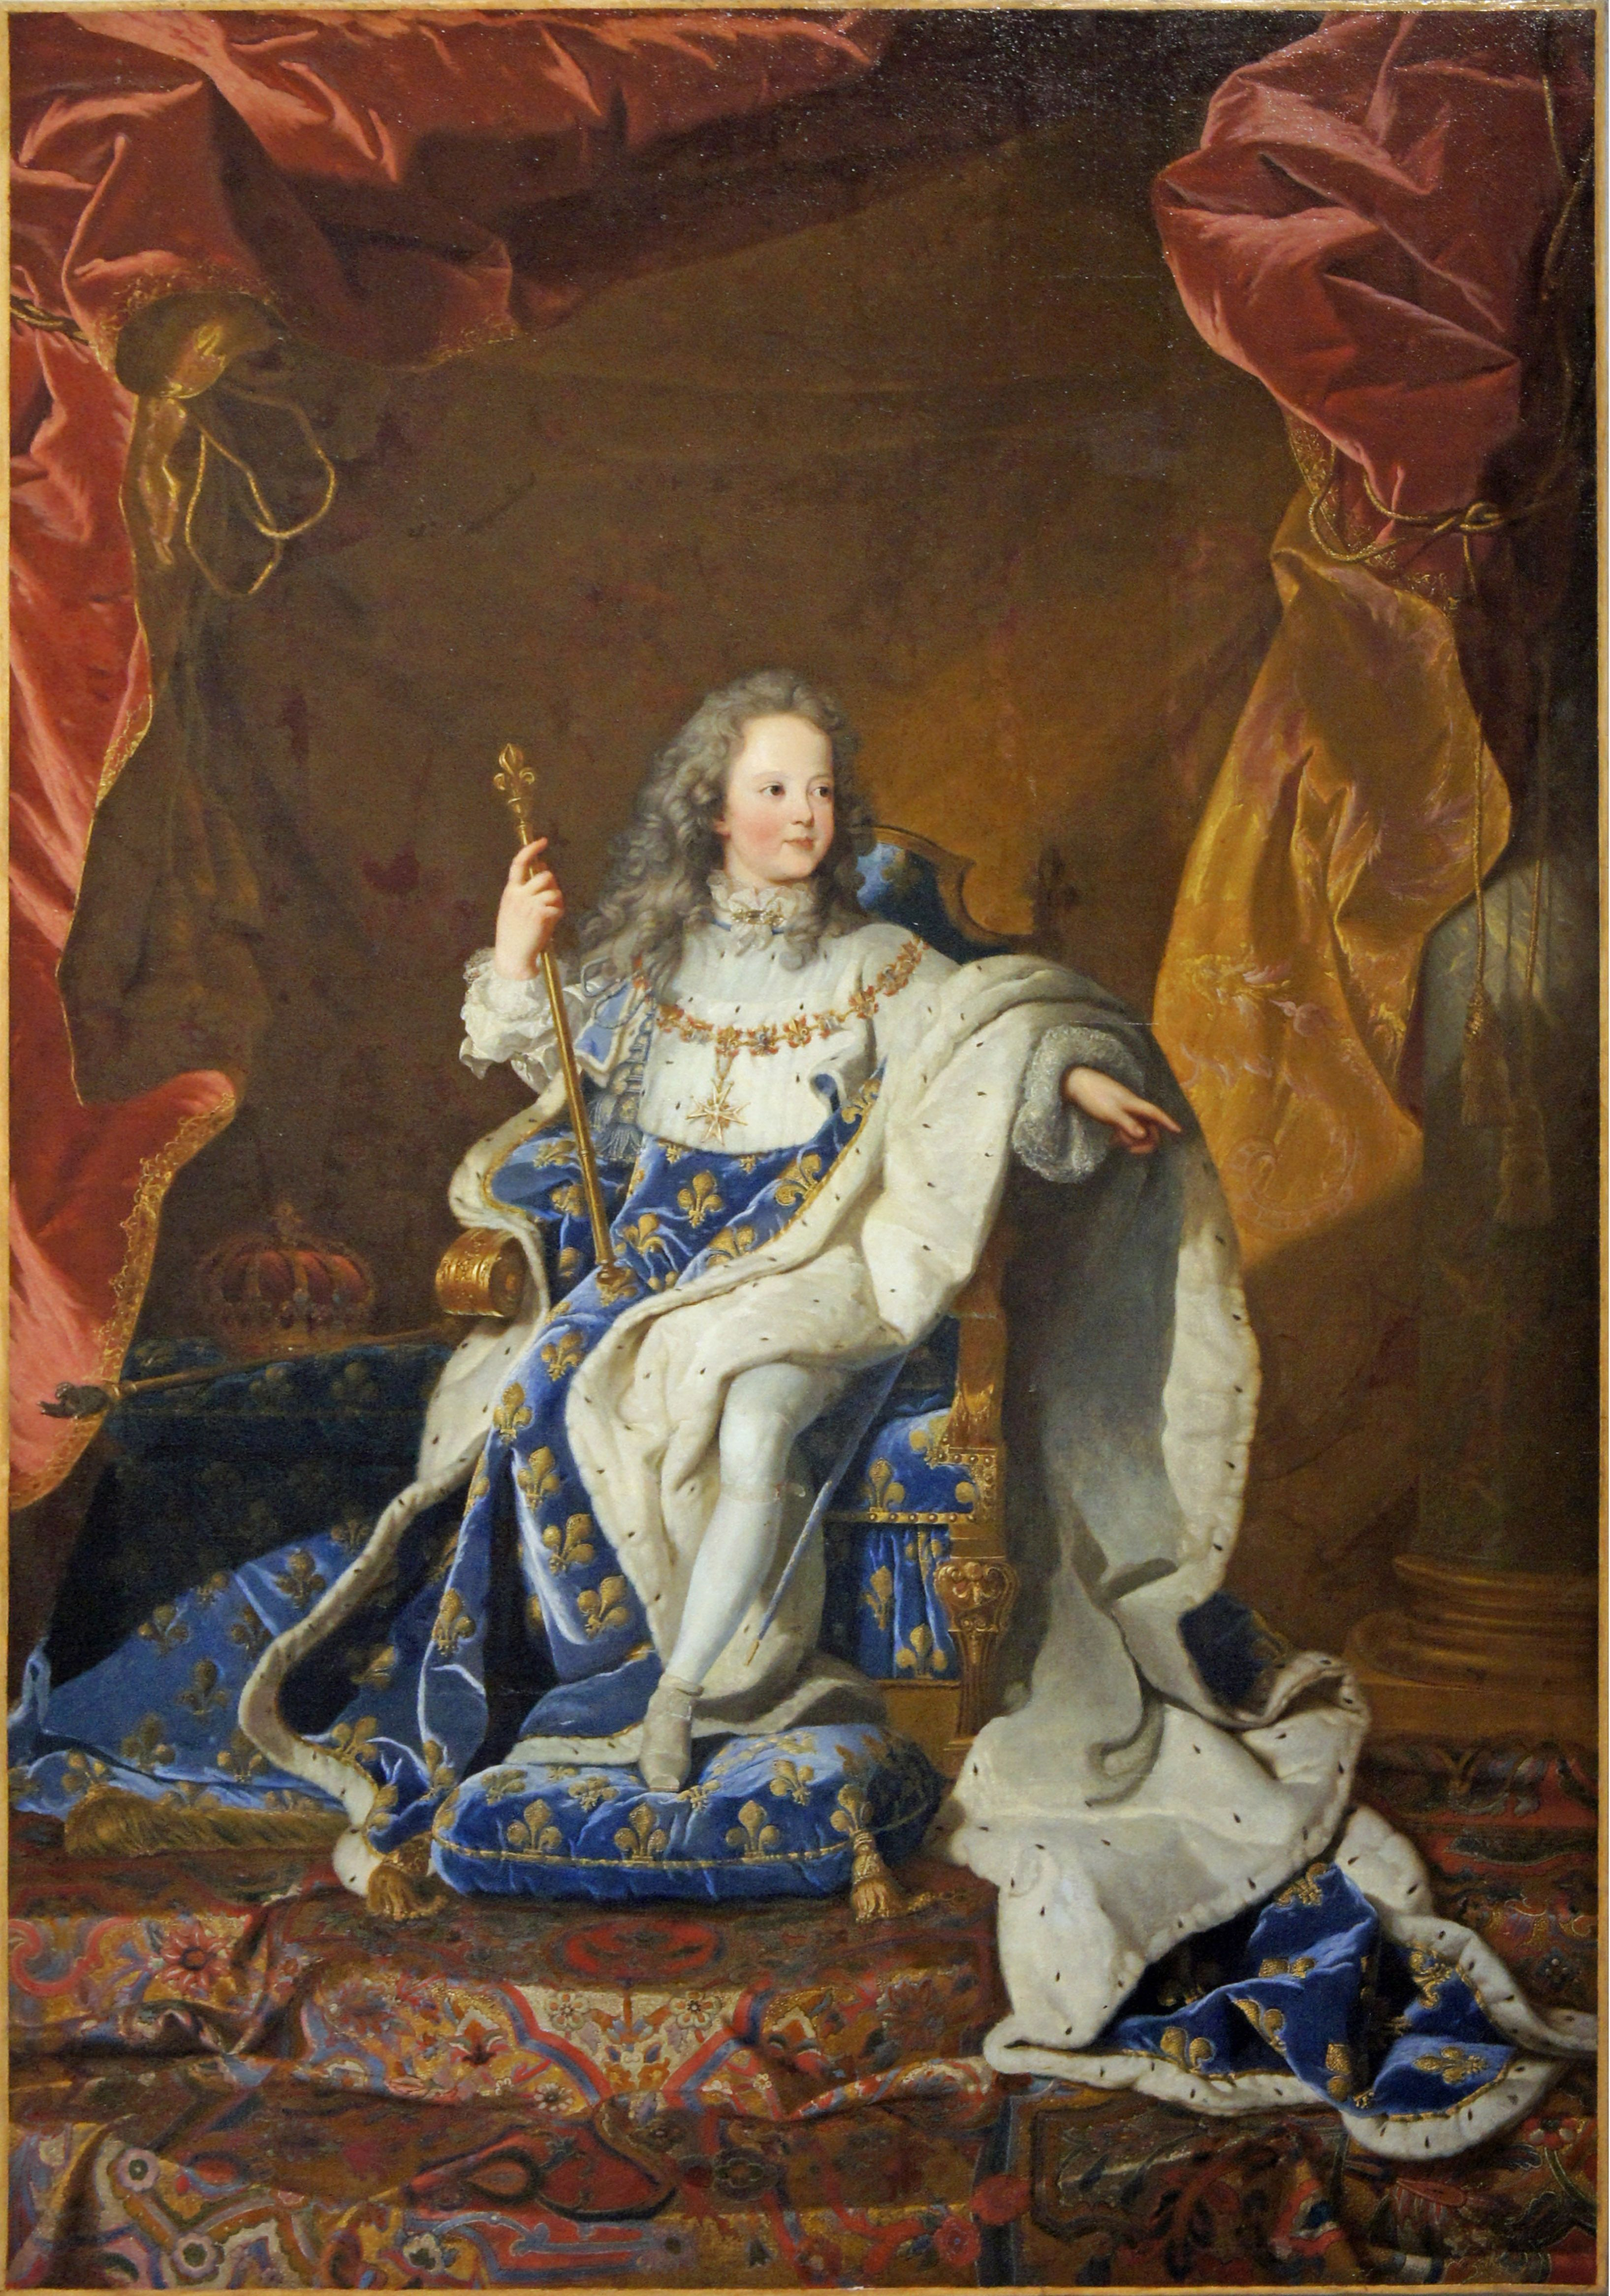 how successful was louis xiv in Louis xiv: louis xiv, king of france (1643–1715) who ruled his country, principally from his great palace at versailles, during one of its most brilliant periods.